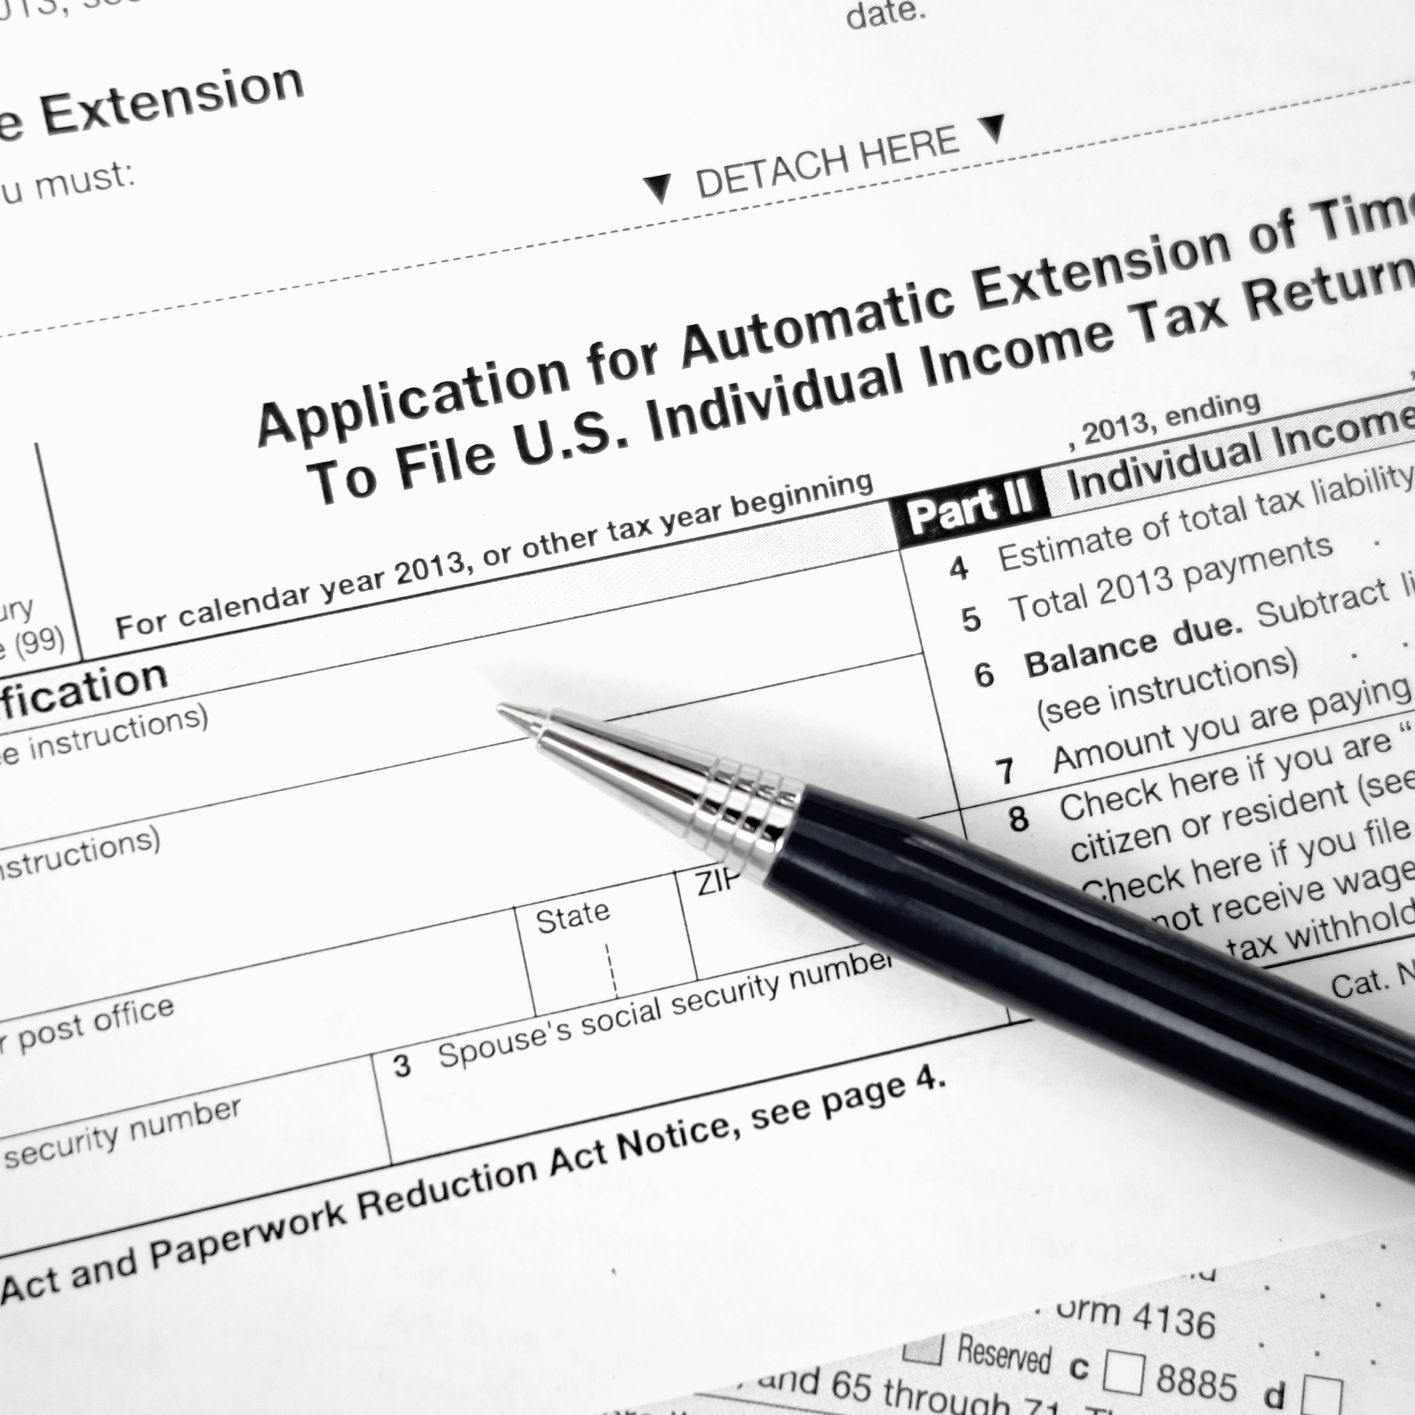 Need More Time to Prepare Your Taxes? File for a Tax Extension With the IRS